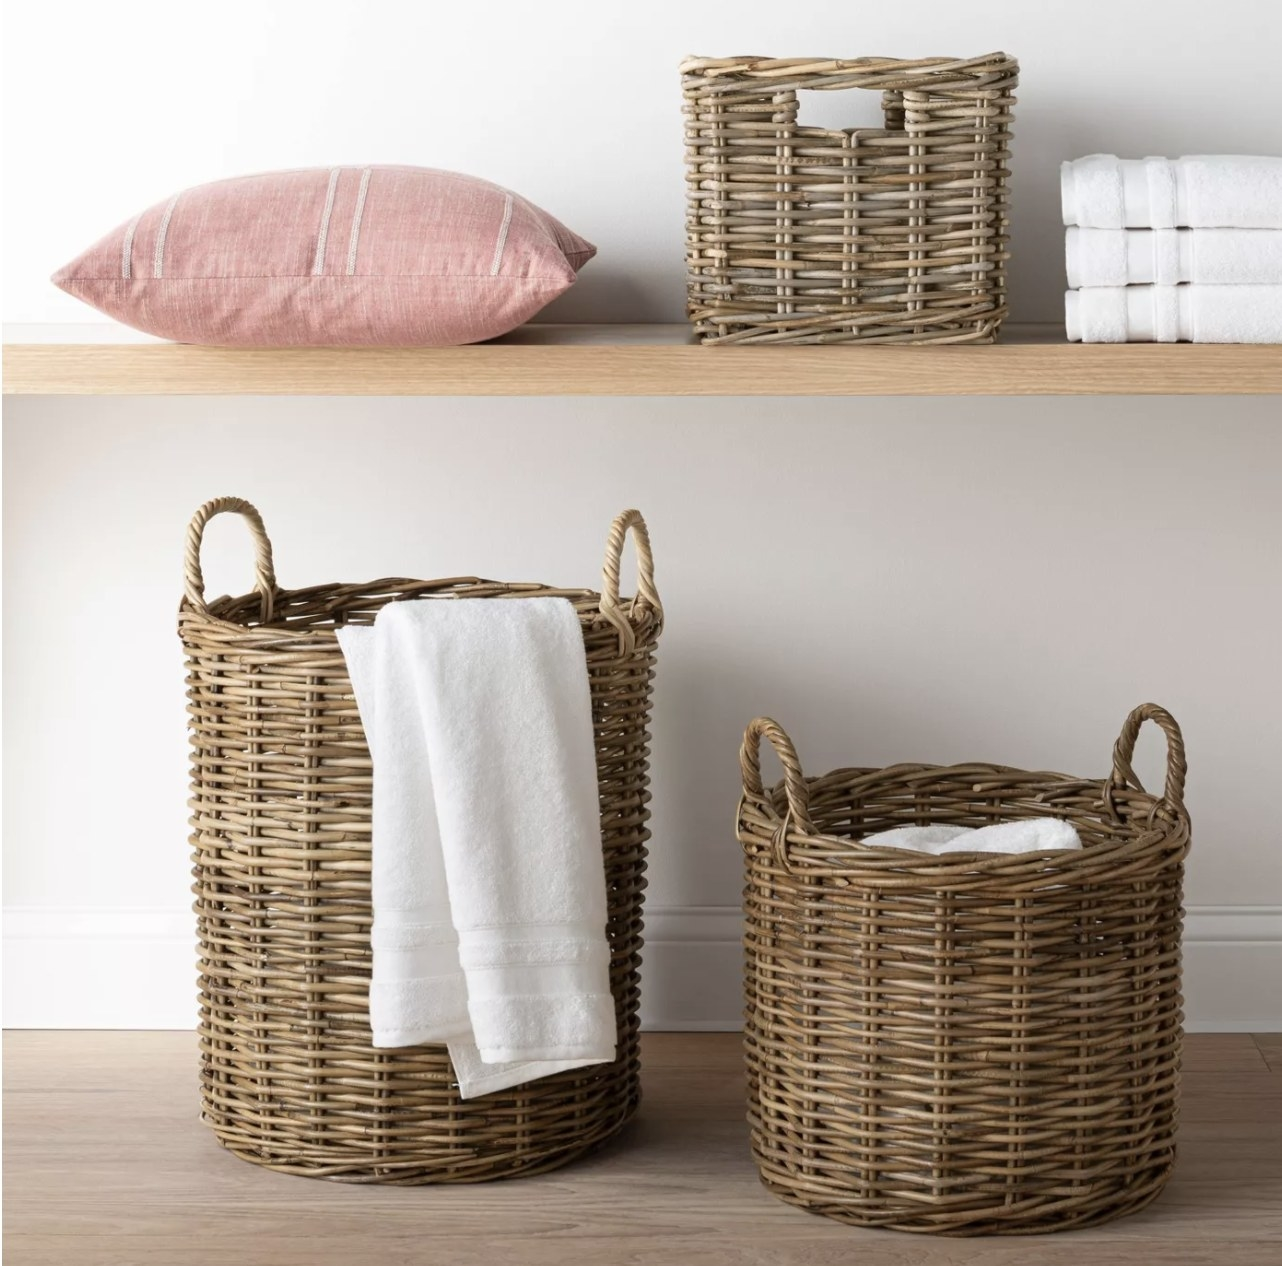 "The round rattan baskets in 16"" x 14"" and 18"" x 18"" storing towels"